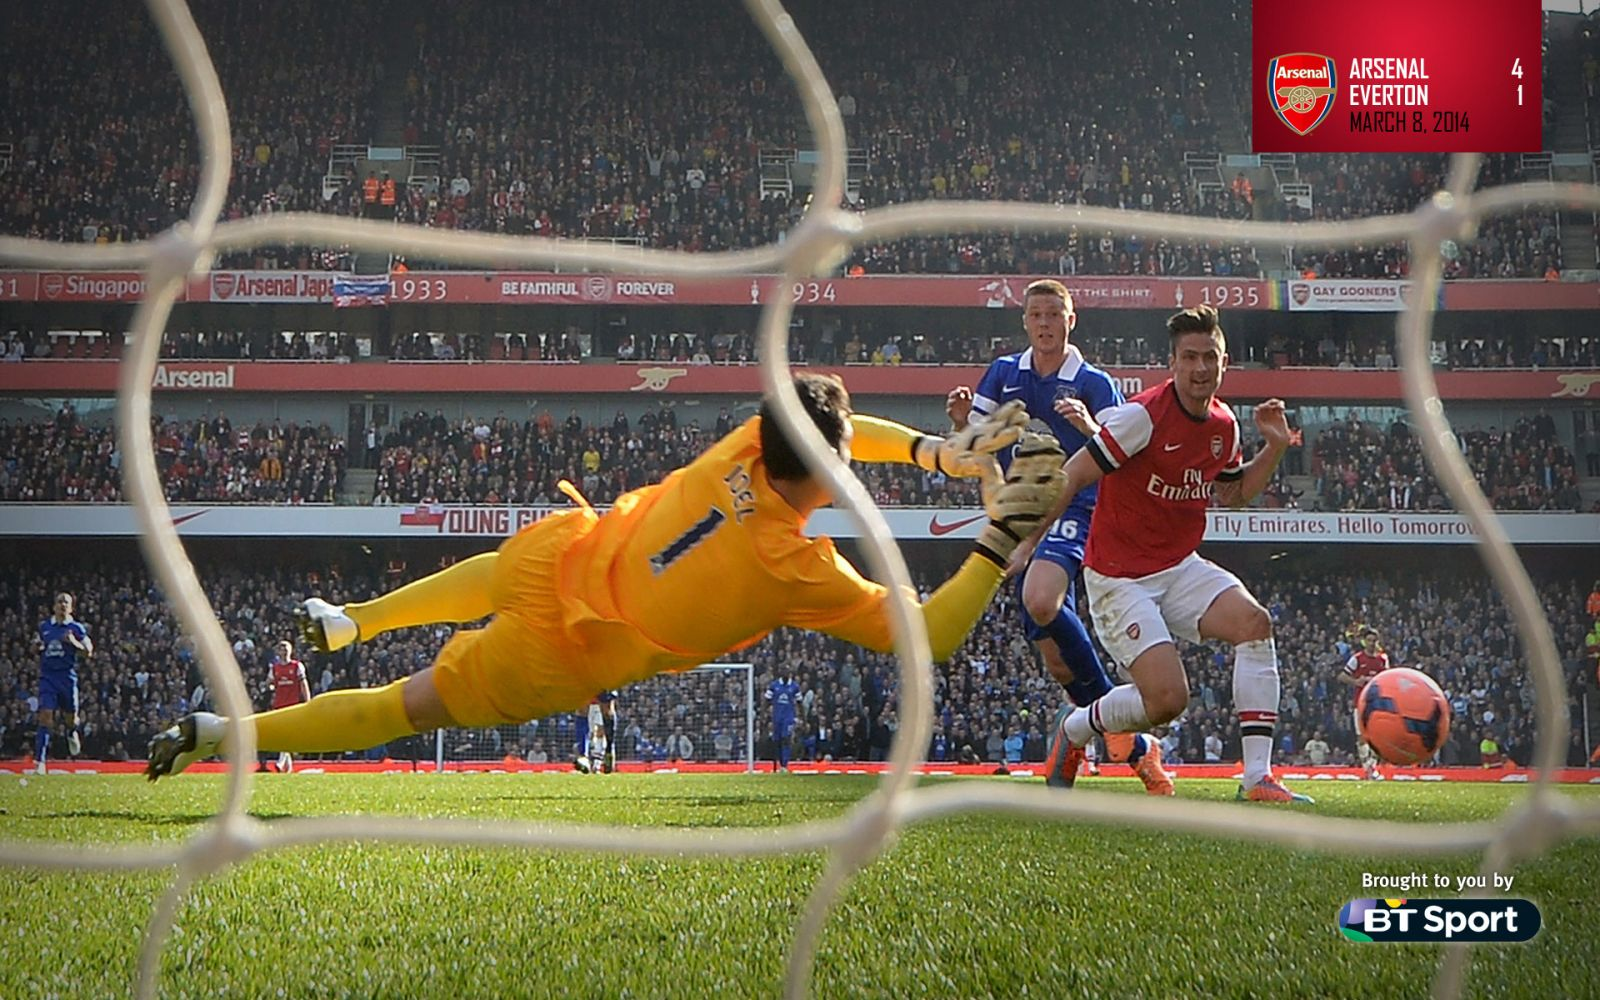 March 8, 2014 - Arsenal 4-1 Everton